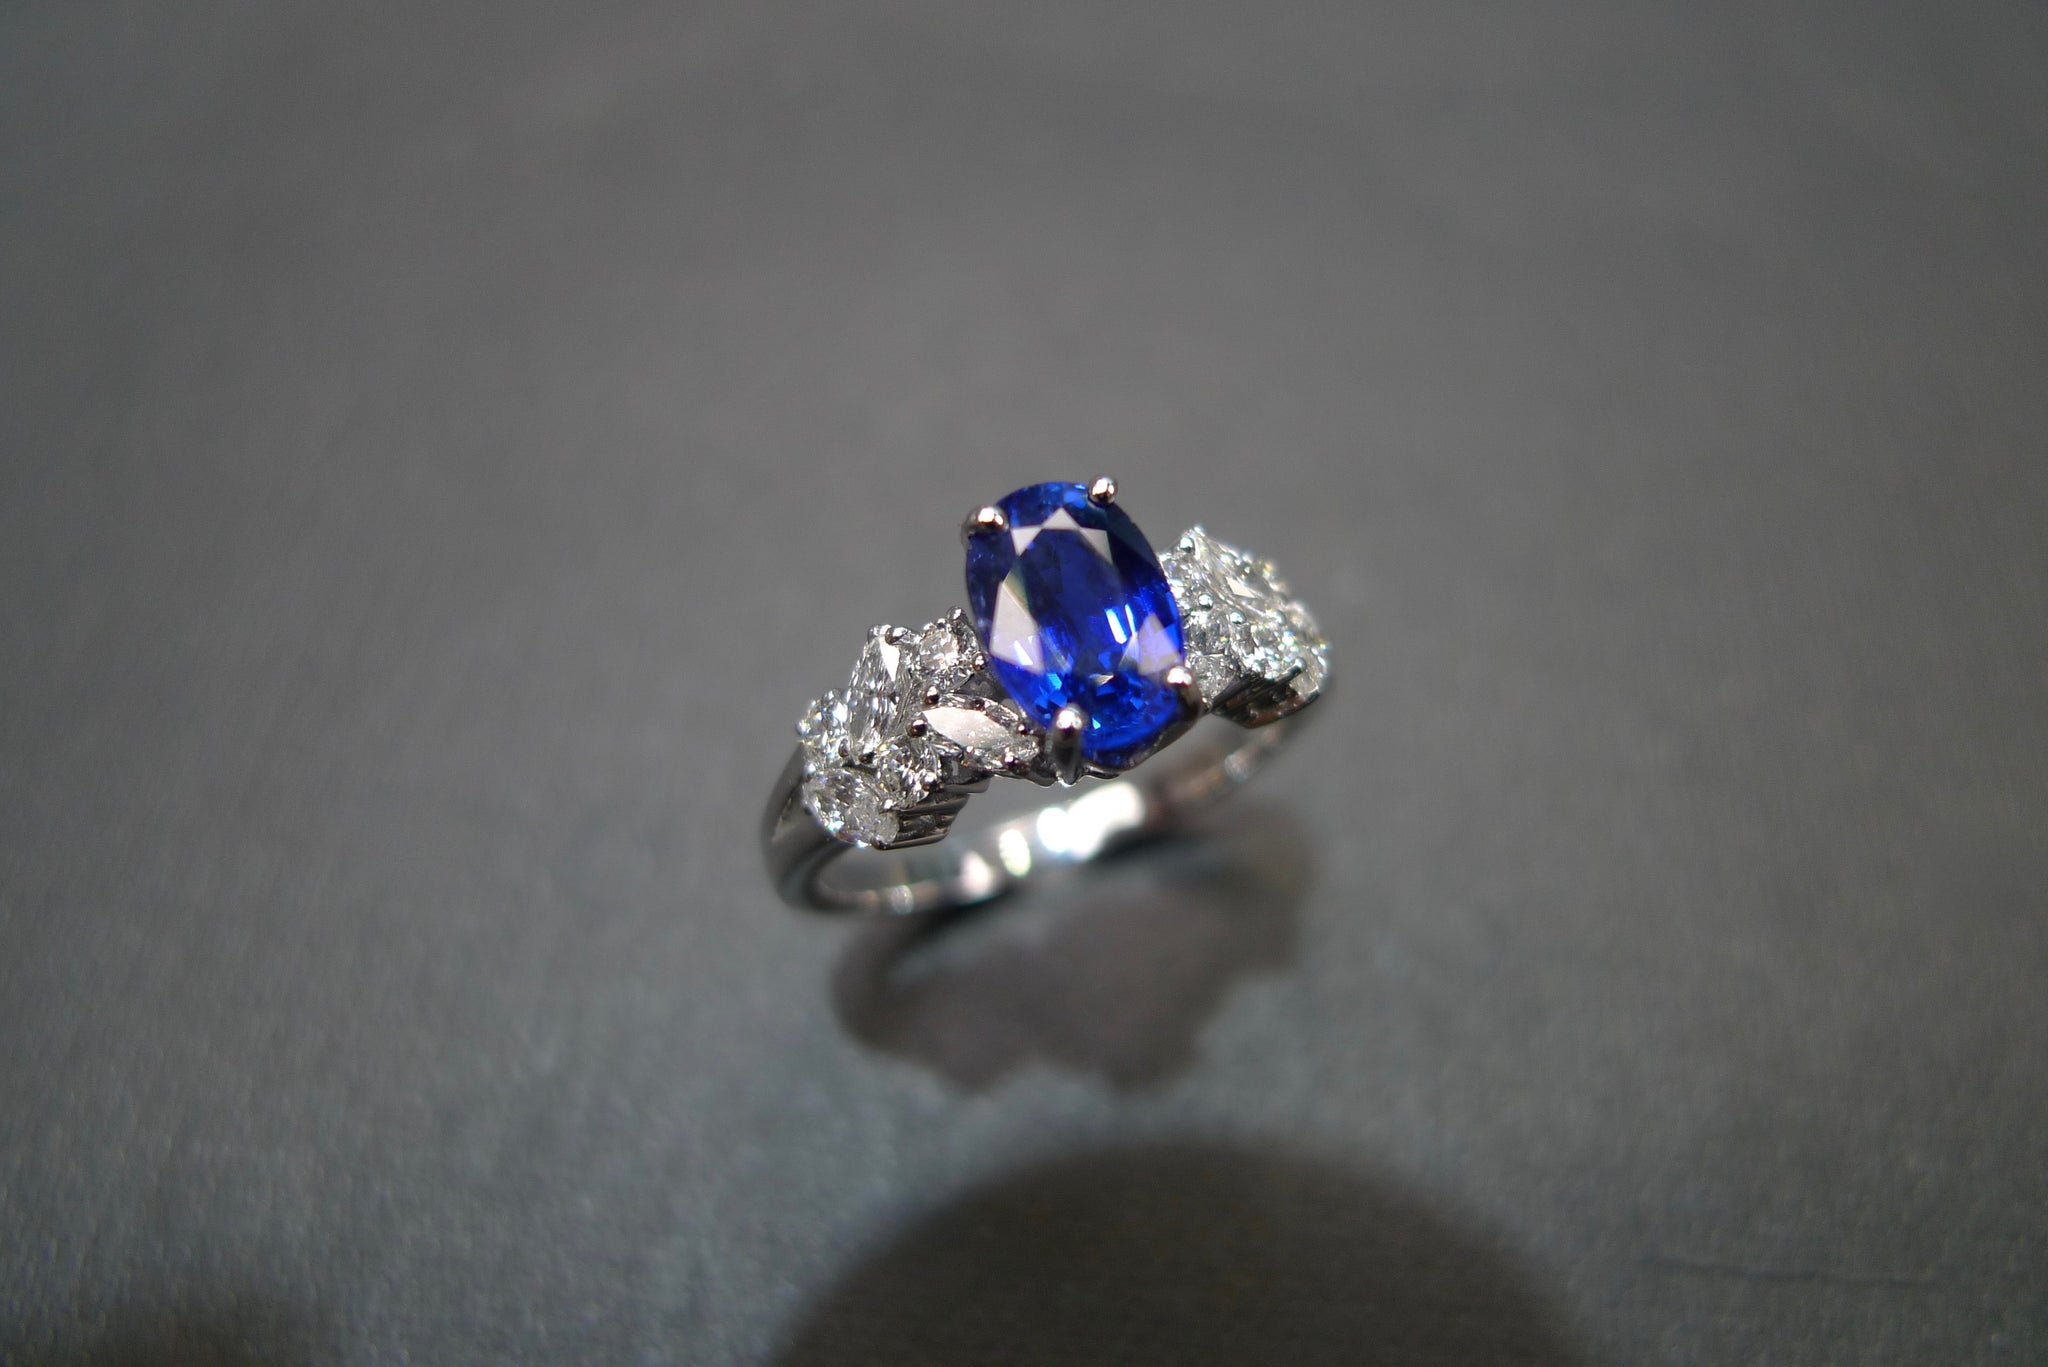 Blue Sapphire & Marquise Diamond Ring in 14K White Gold - HN JEWELRY